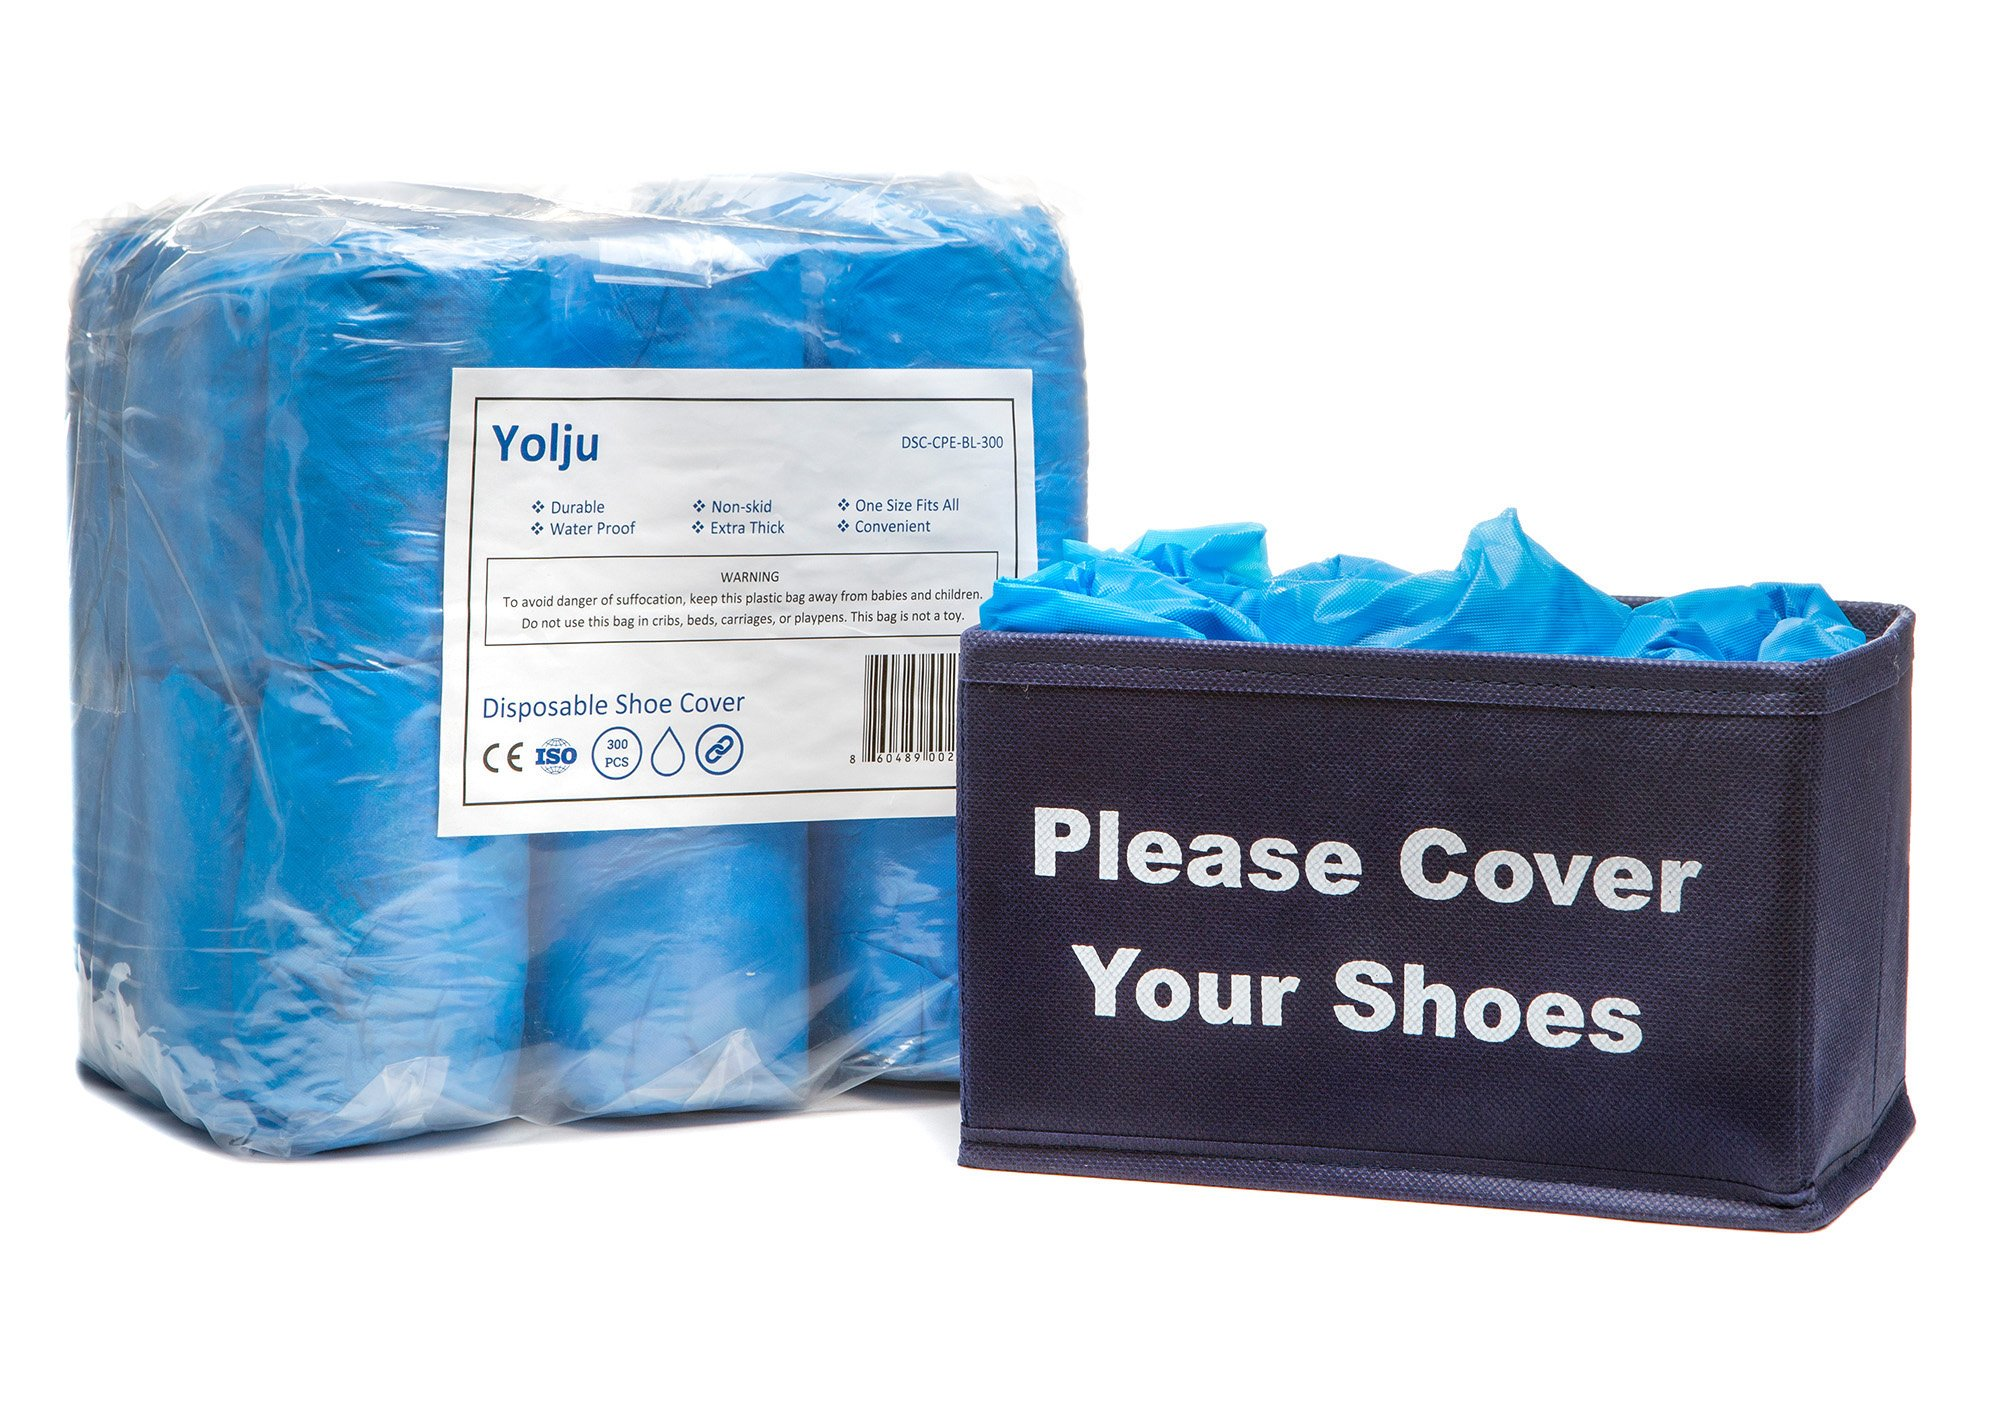 Yolju 300 Pack Disposable Shoe Covers with a Bonus Small Storage Box | Waterproof, Non Slip, Durable CPE Material